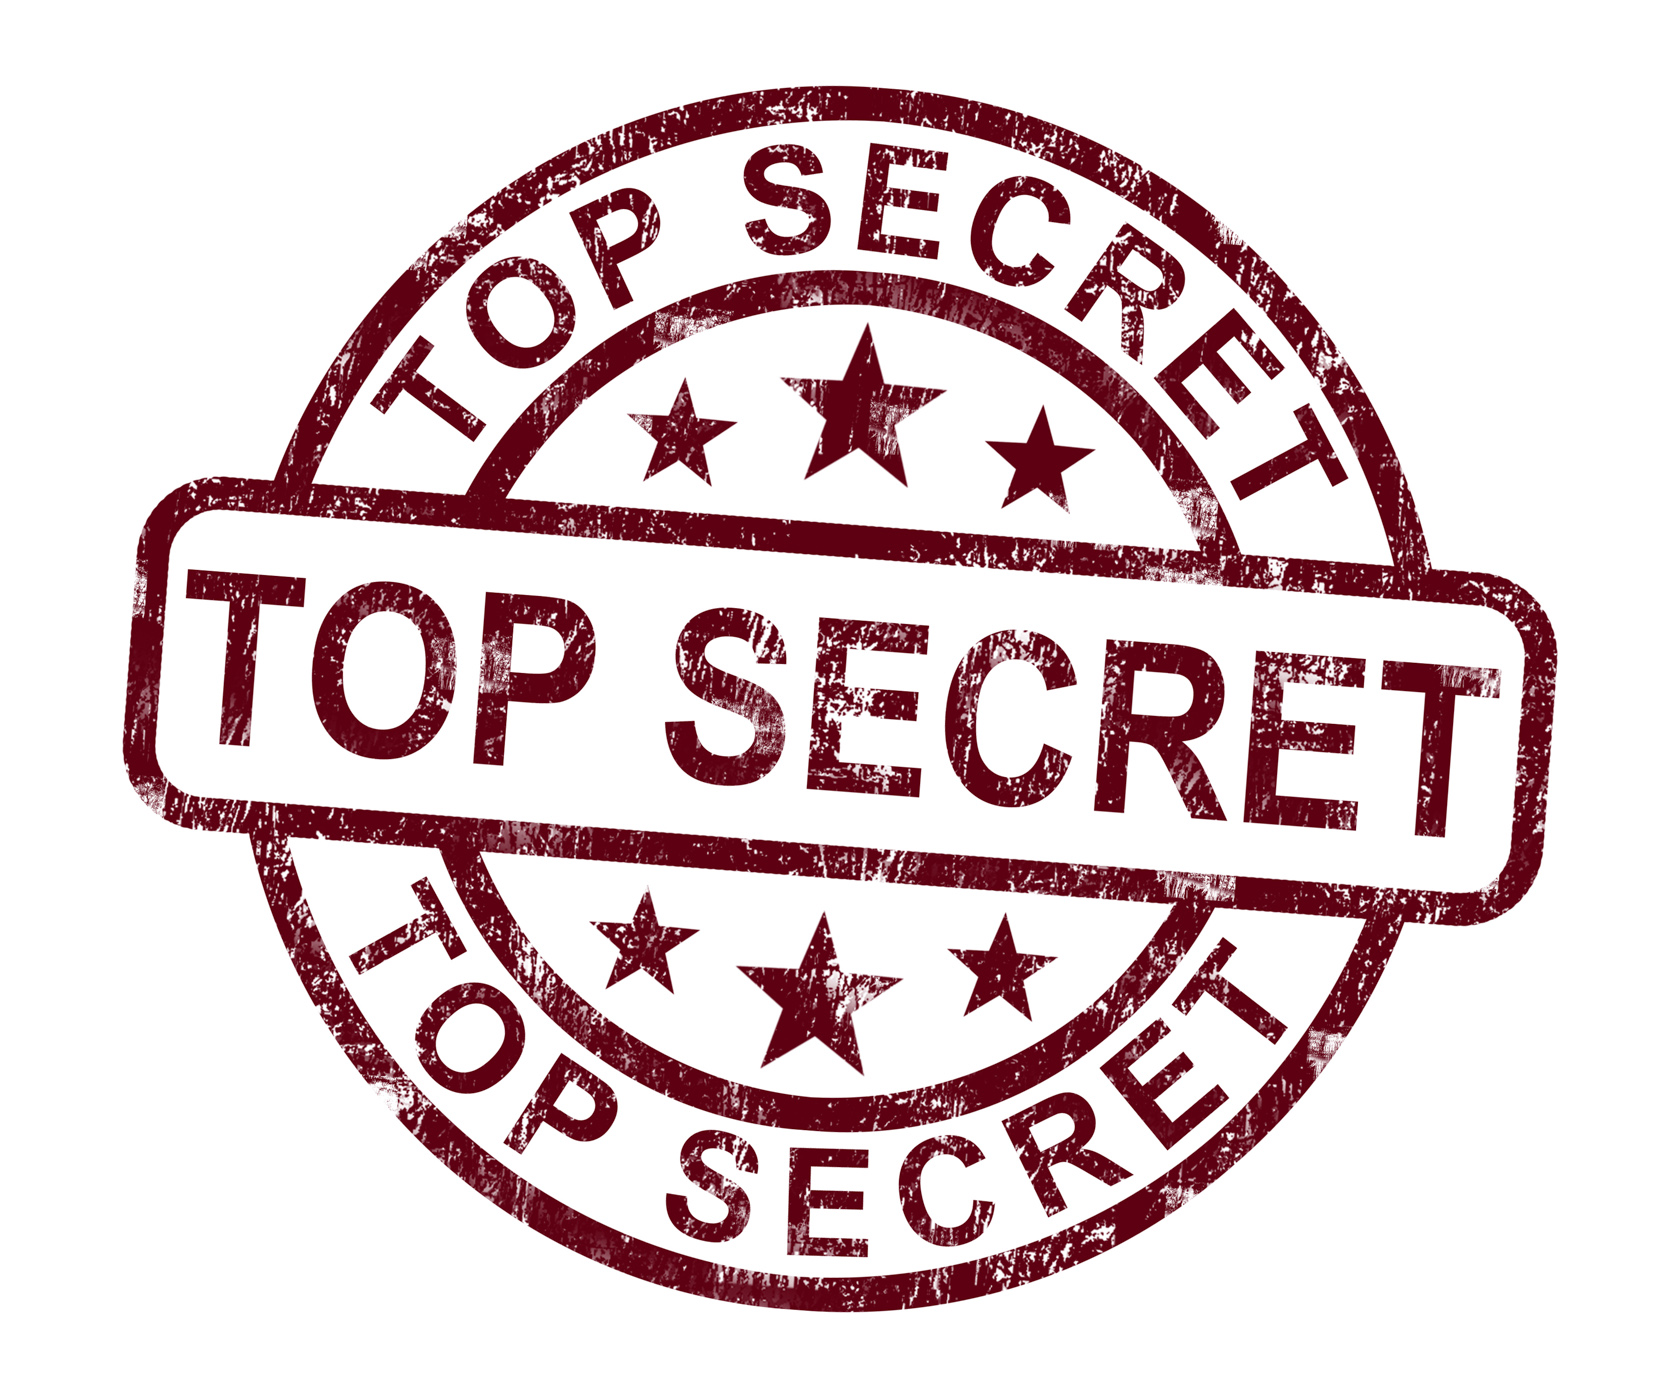 Top Secret Stamp Shows Classified Private Correspondence, Authorized, Private, Strict, Stamp, HQ Photo